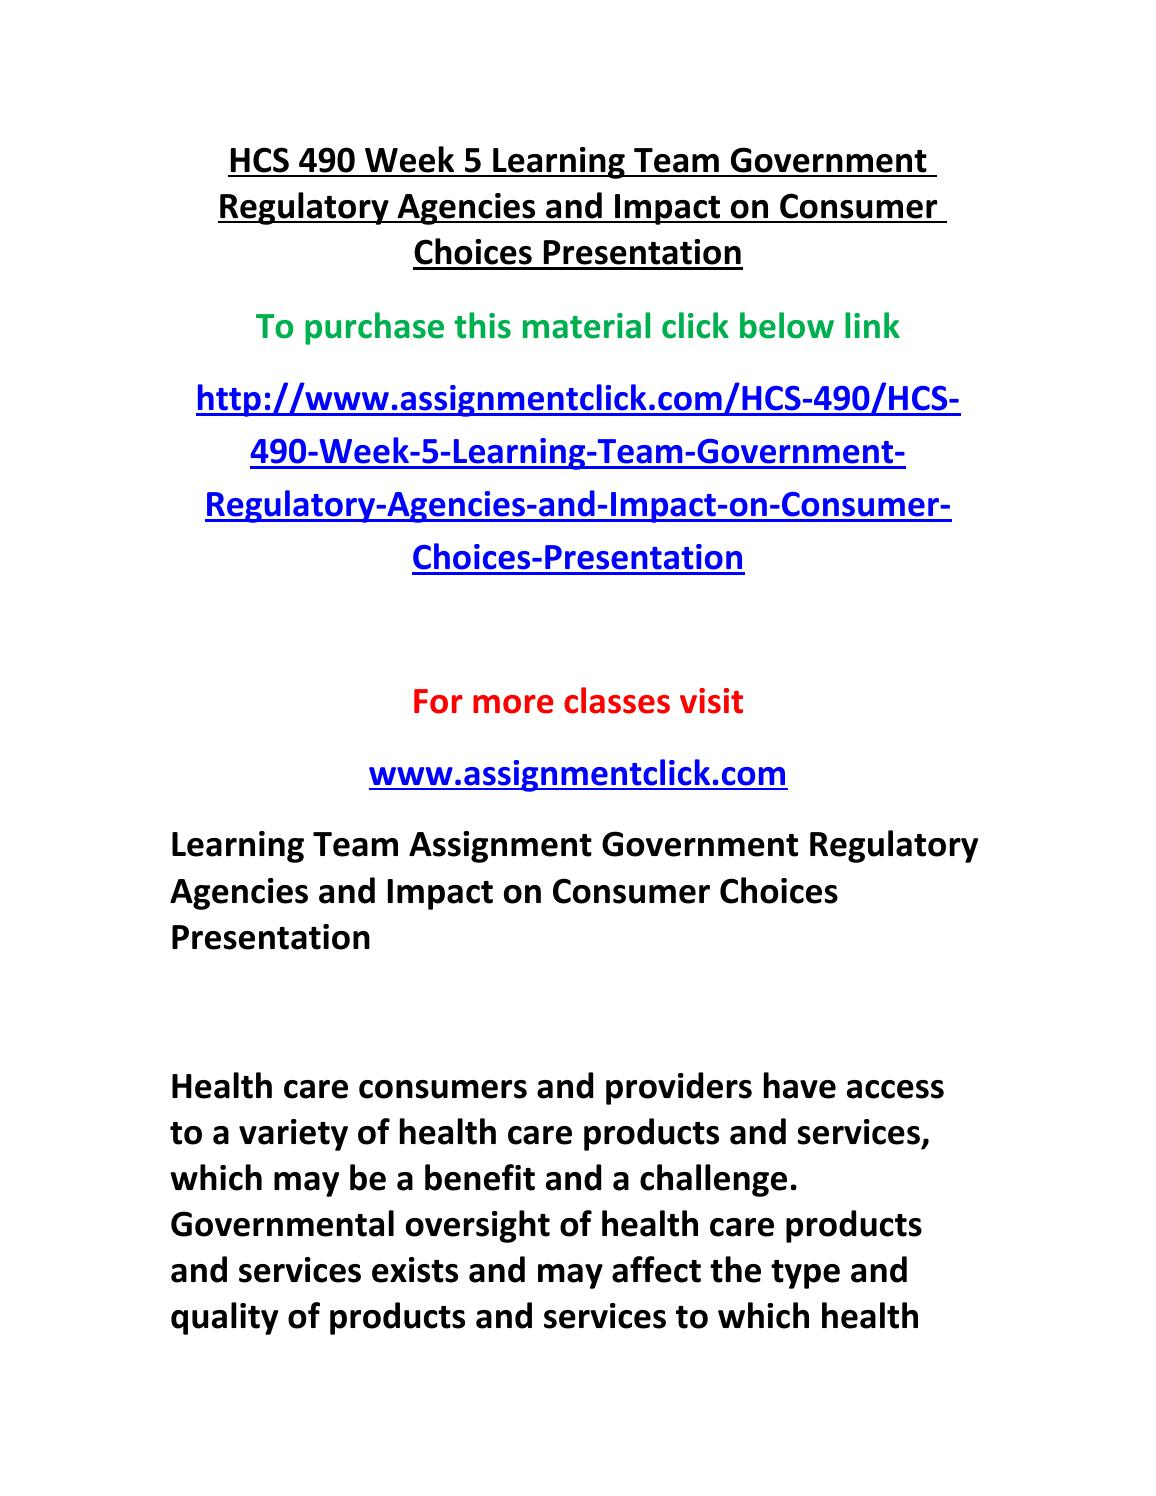 hcs 490 learning team marketing plan Hcs 490 week 2 team assignment government regulatory agencies and impact on consumer choices outline resource: government regulatory agencies and impact on consumer choices outline grading criteria located on the student website.